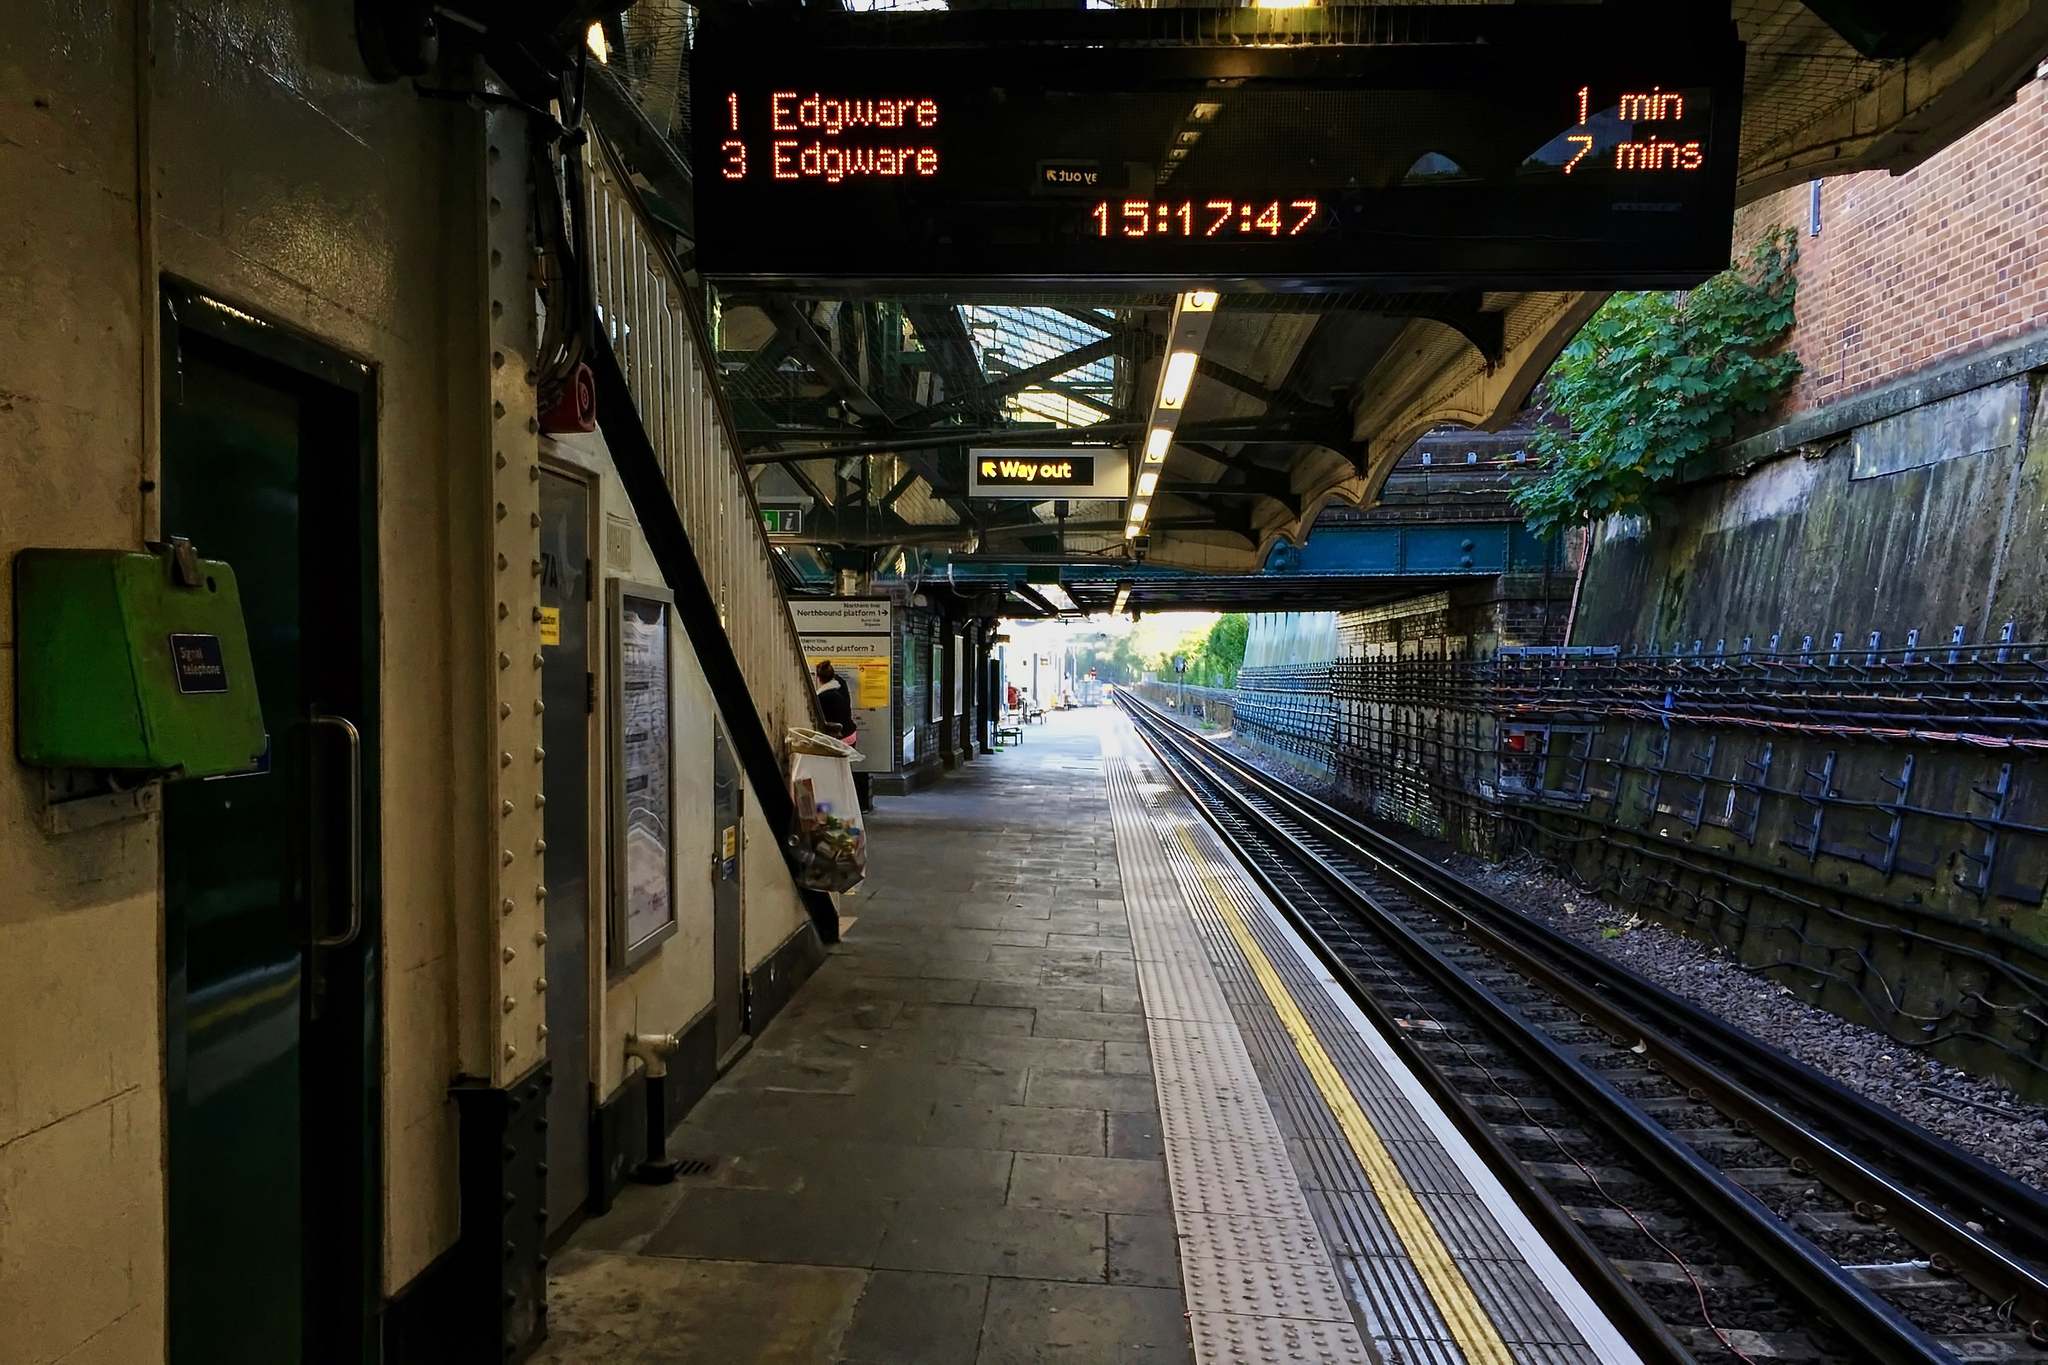 Colindale tube station, northbound platform